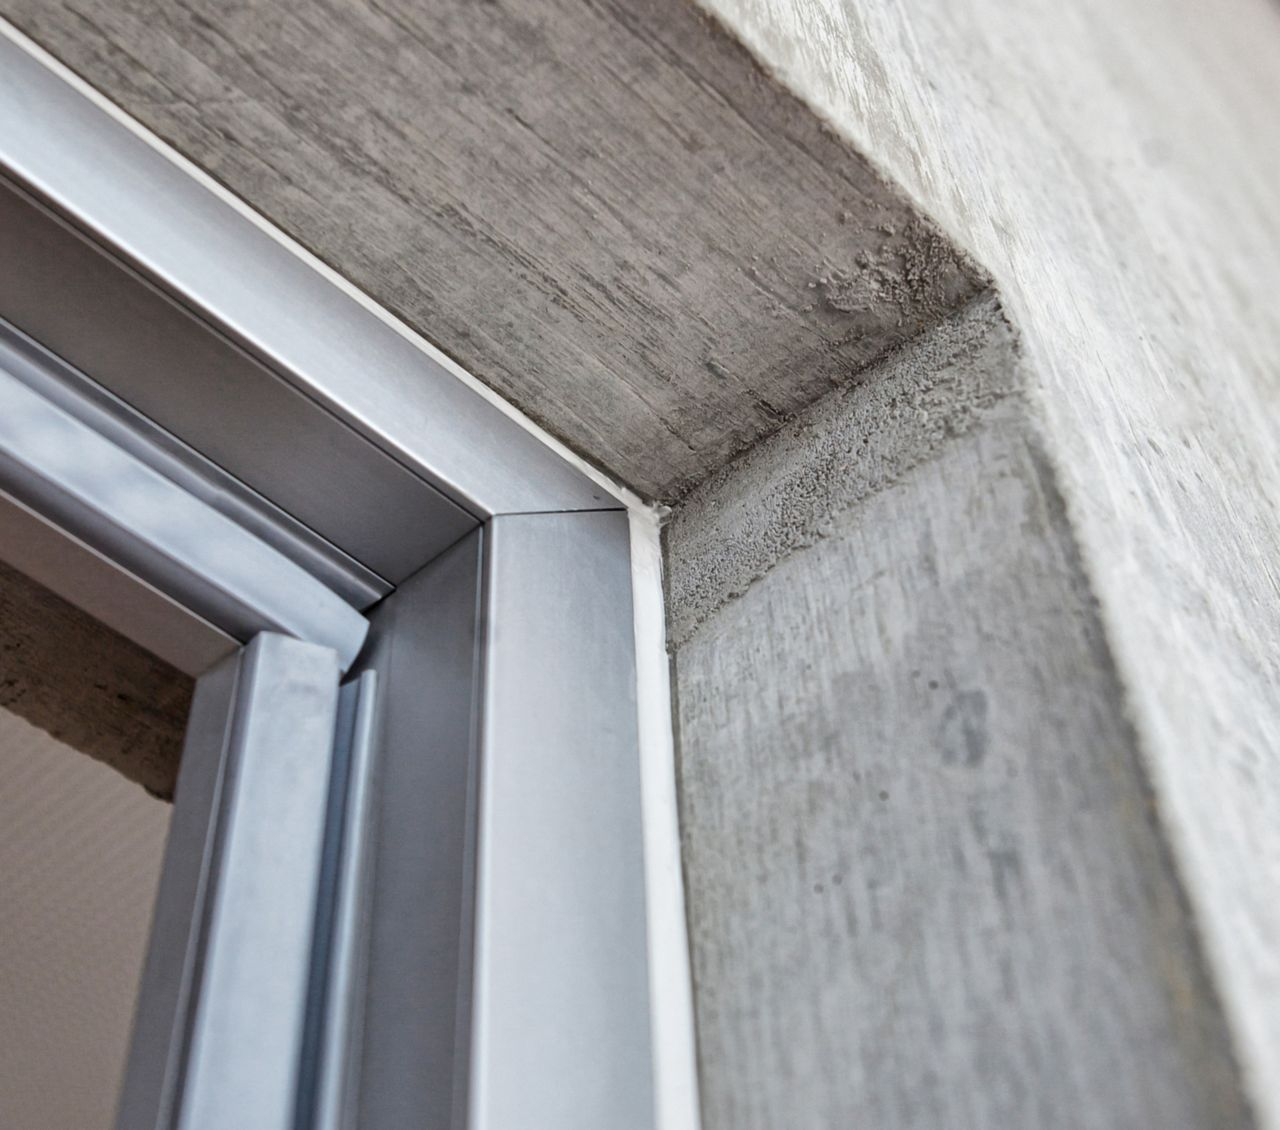 Window joint sealing